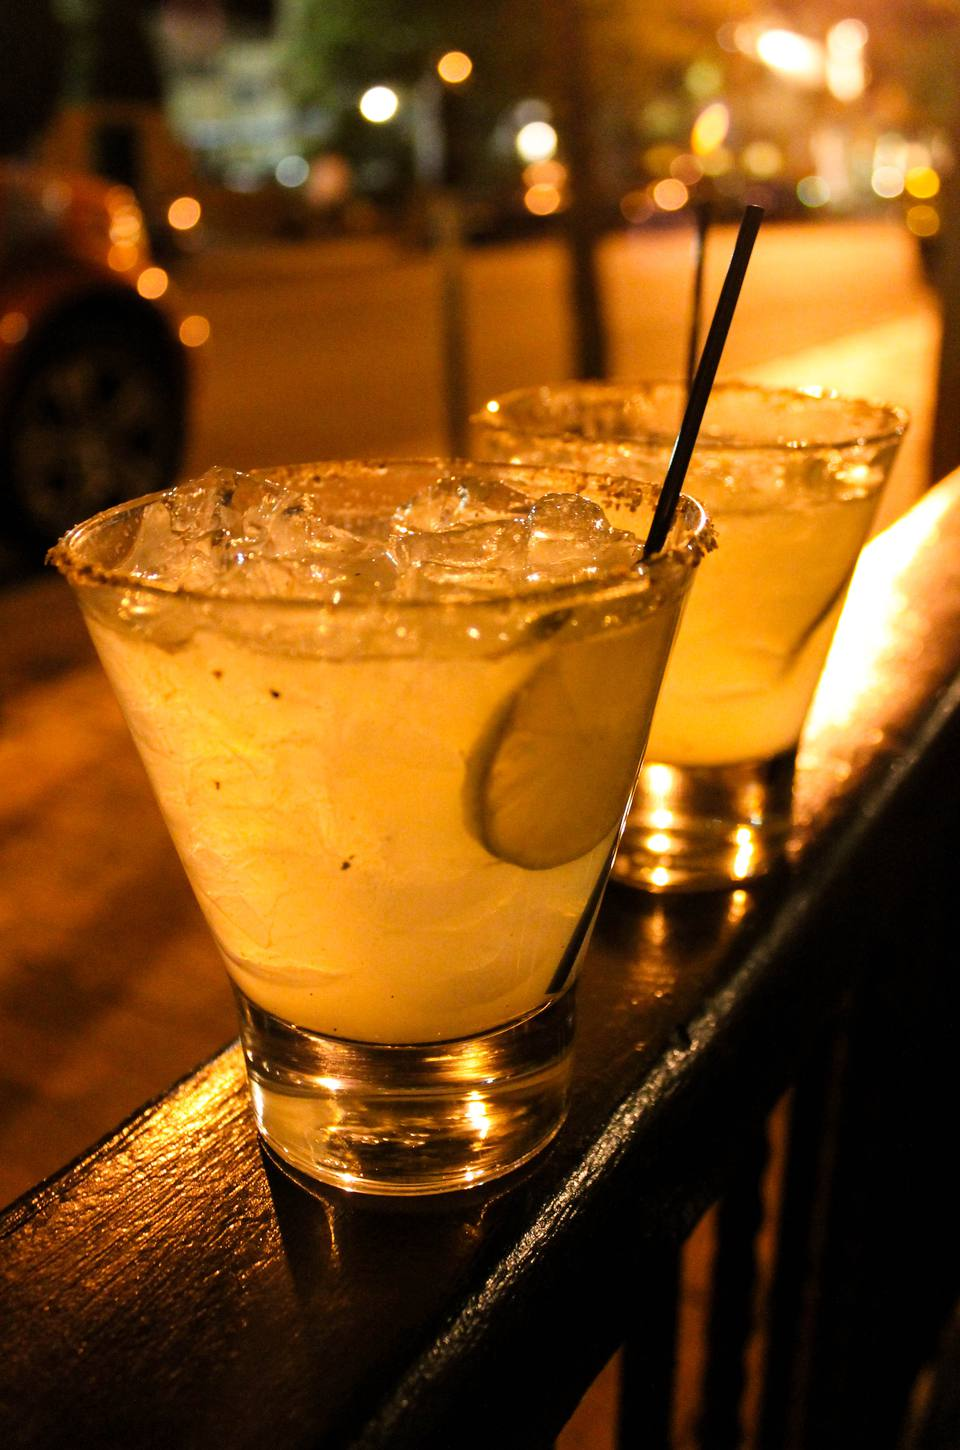 Smoked-sage margaritas at charming Secreto Lounge, in the historic St. Francis Hotel